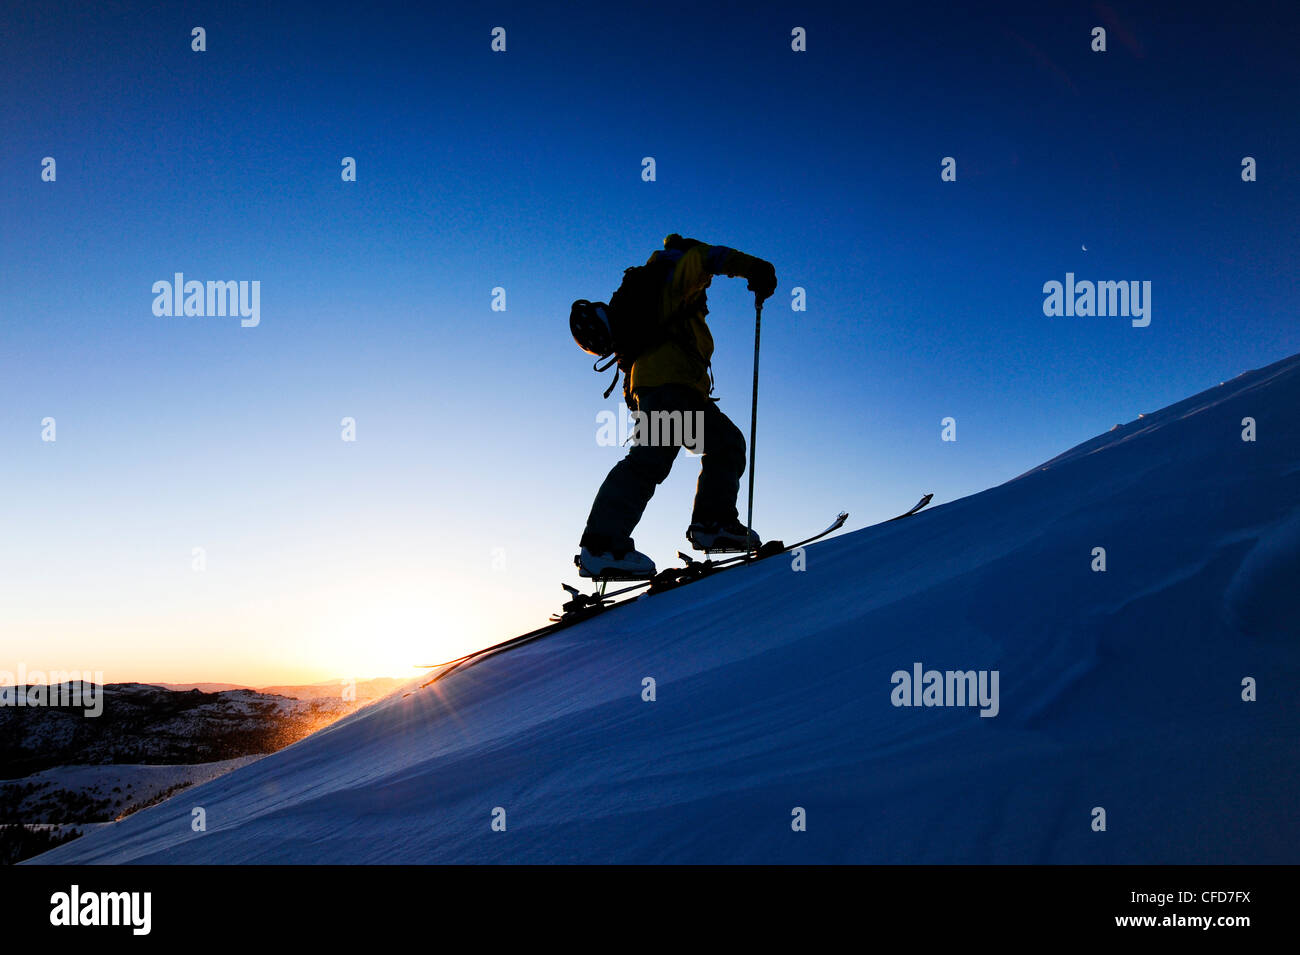 A silhouette of a skier skinning up a snow covered slope at sunrise in the Sierra Nevada near Lake Tahoe, California. - Stock Image